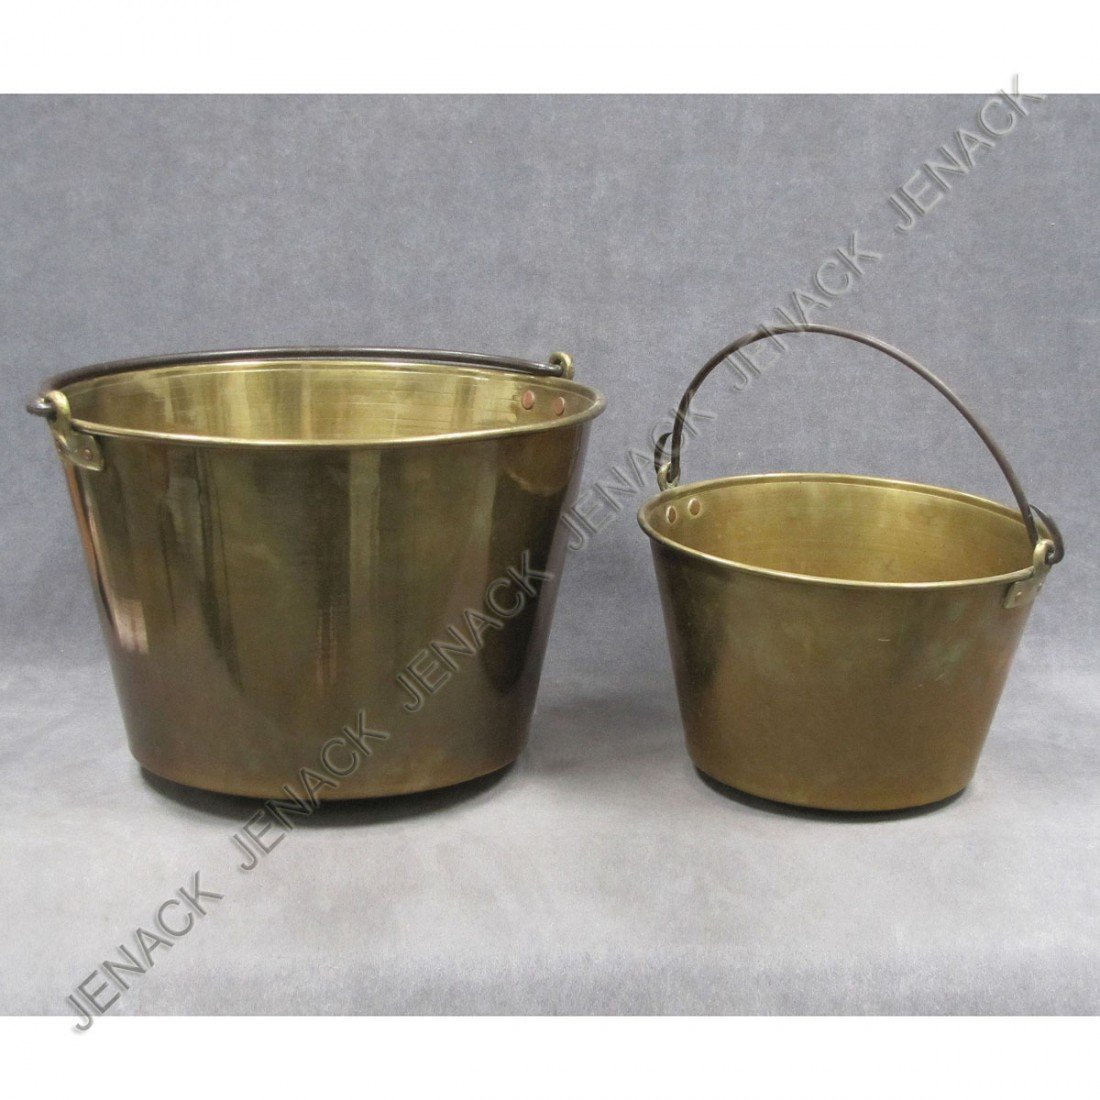 11: LOT (2) ANSONIA SPUN BRASS JELLY PAILS, SIGNED